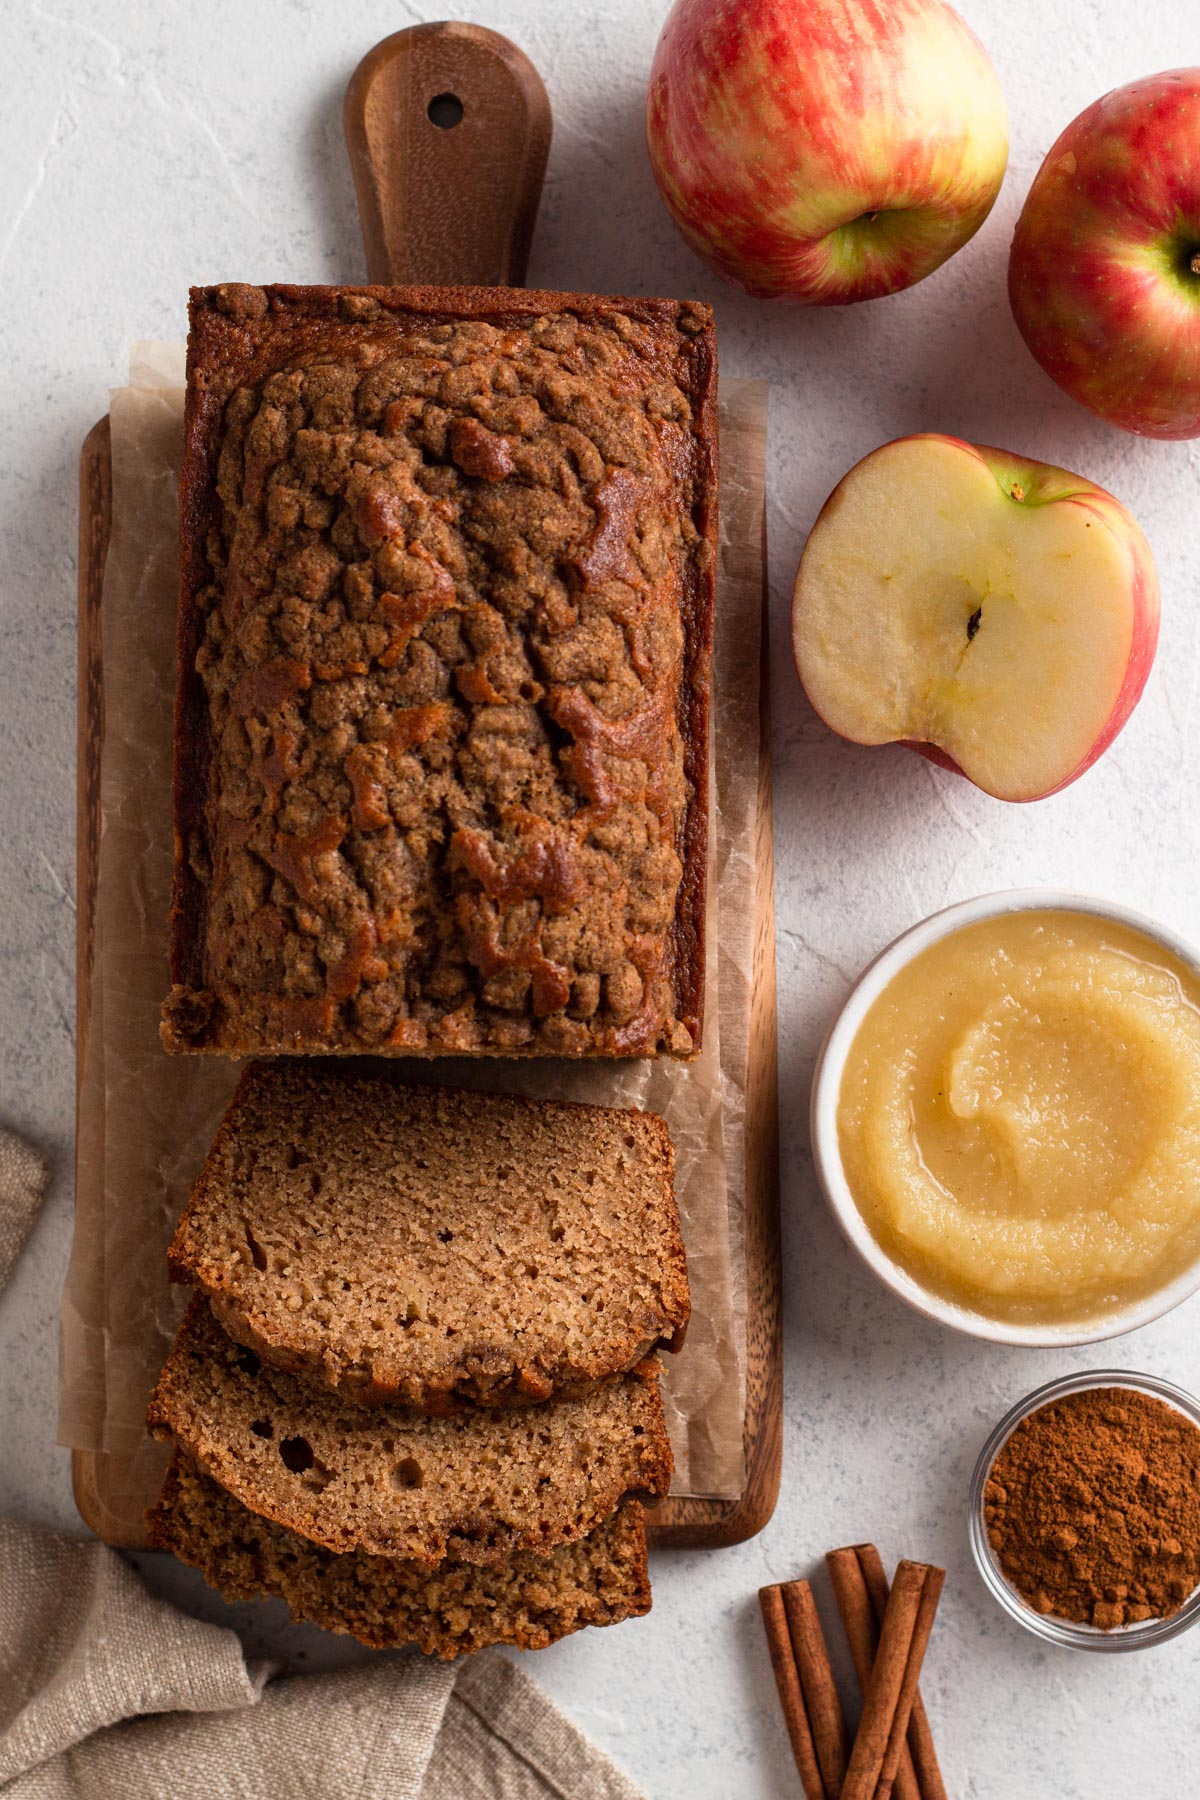 sliced loaf on a wooden cutting board next to apples, applesauce, and cinnamon